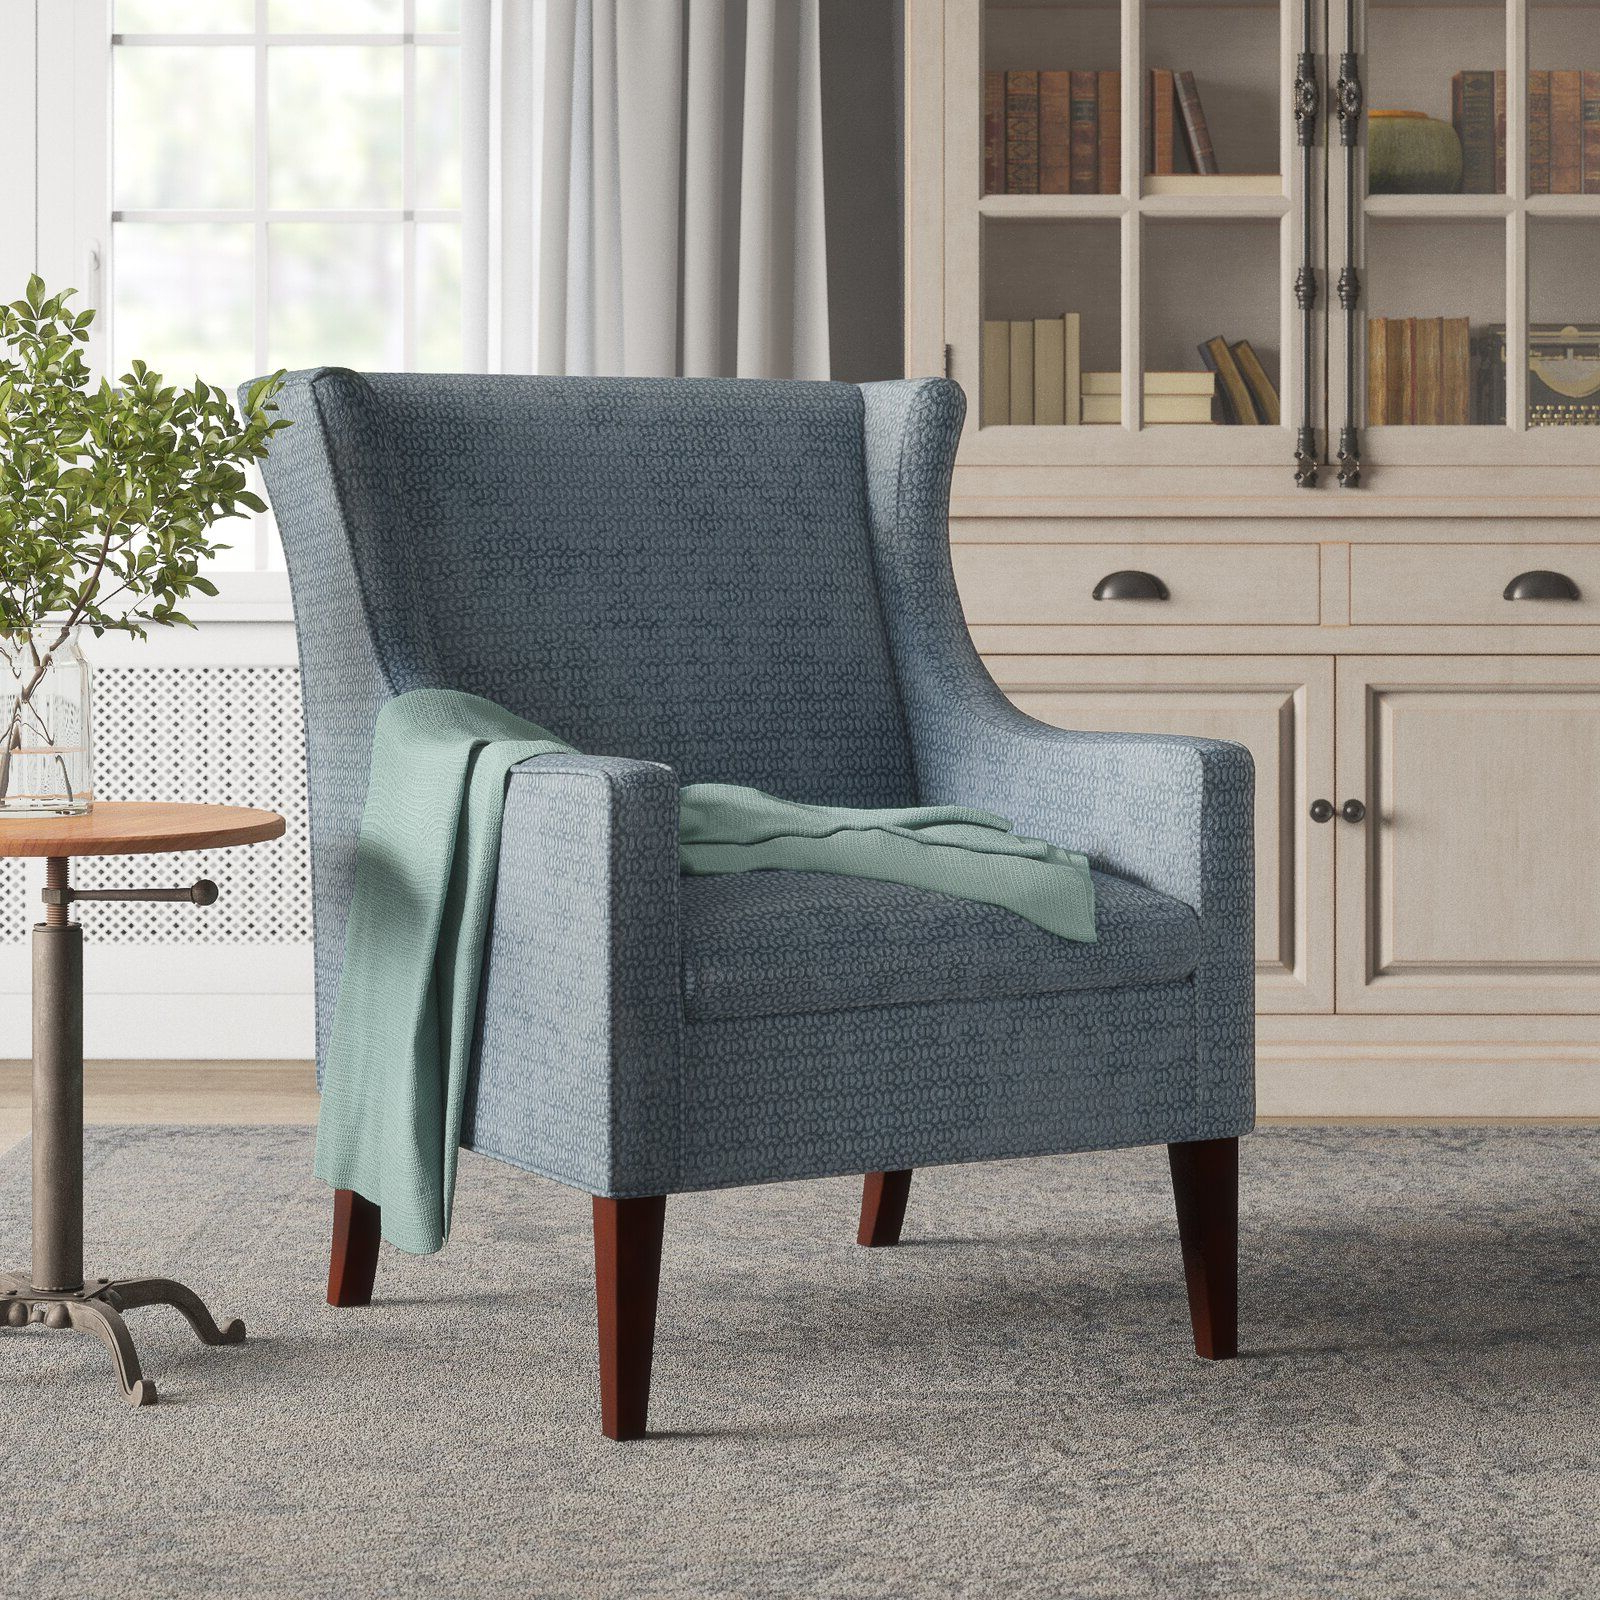 Matherville Wingback Chair $315 – Birch Lane In 2020 Within Fashionable Chagnon Wingback Chairs (View 11 of 20)